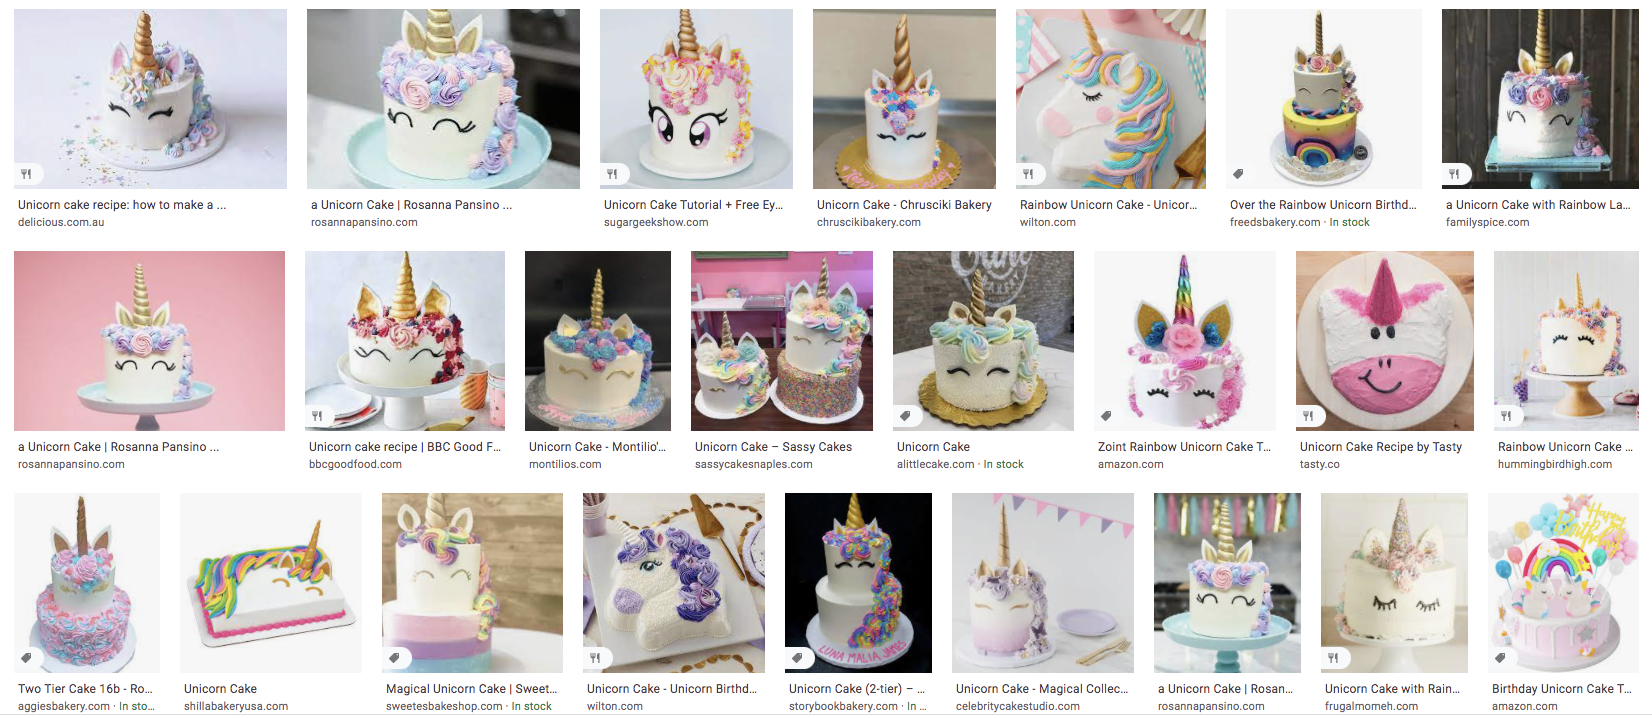 Google search results for a unicorn cake, showing mostly white cakes with a horn on top and two cartoon eyes in front, plus rainbow mane and pointed ears.